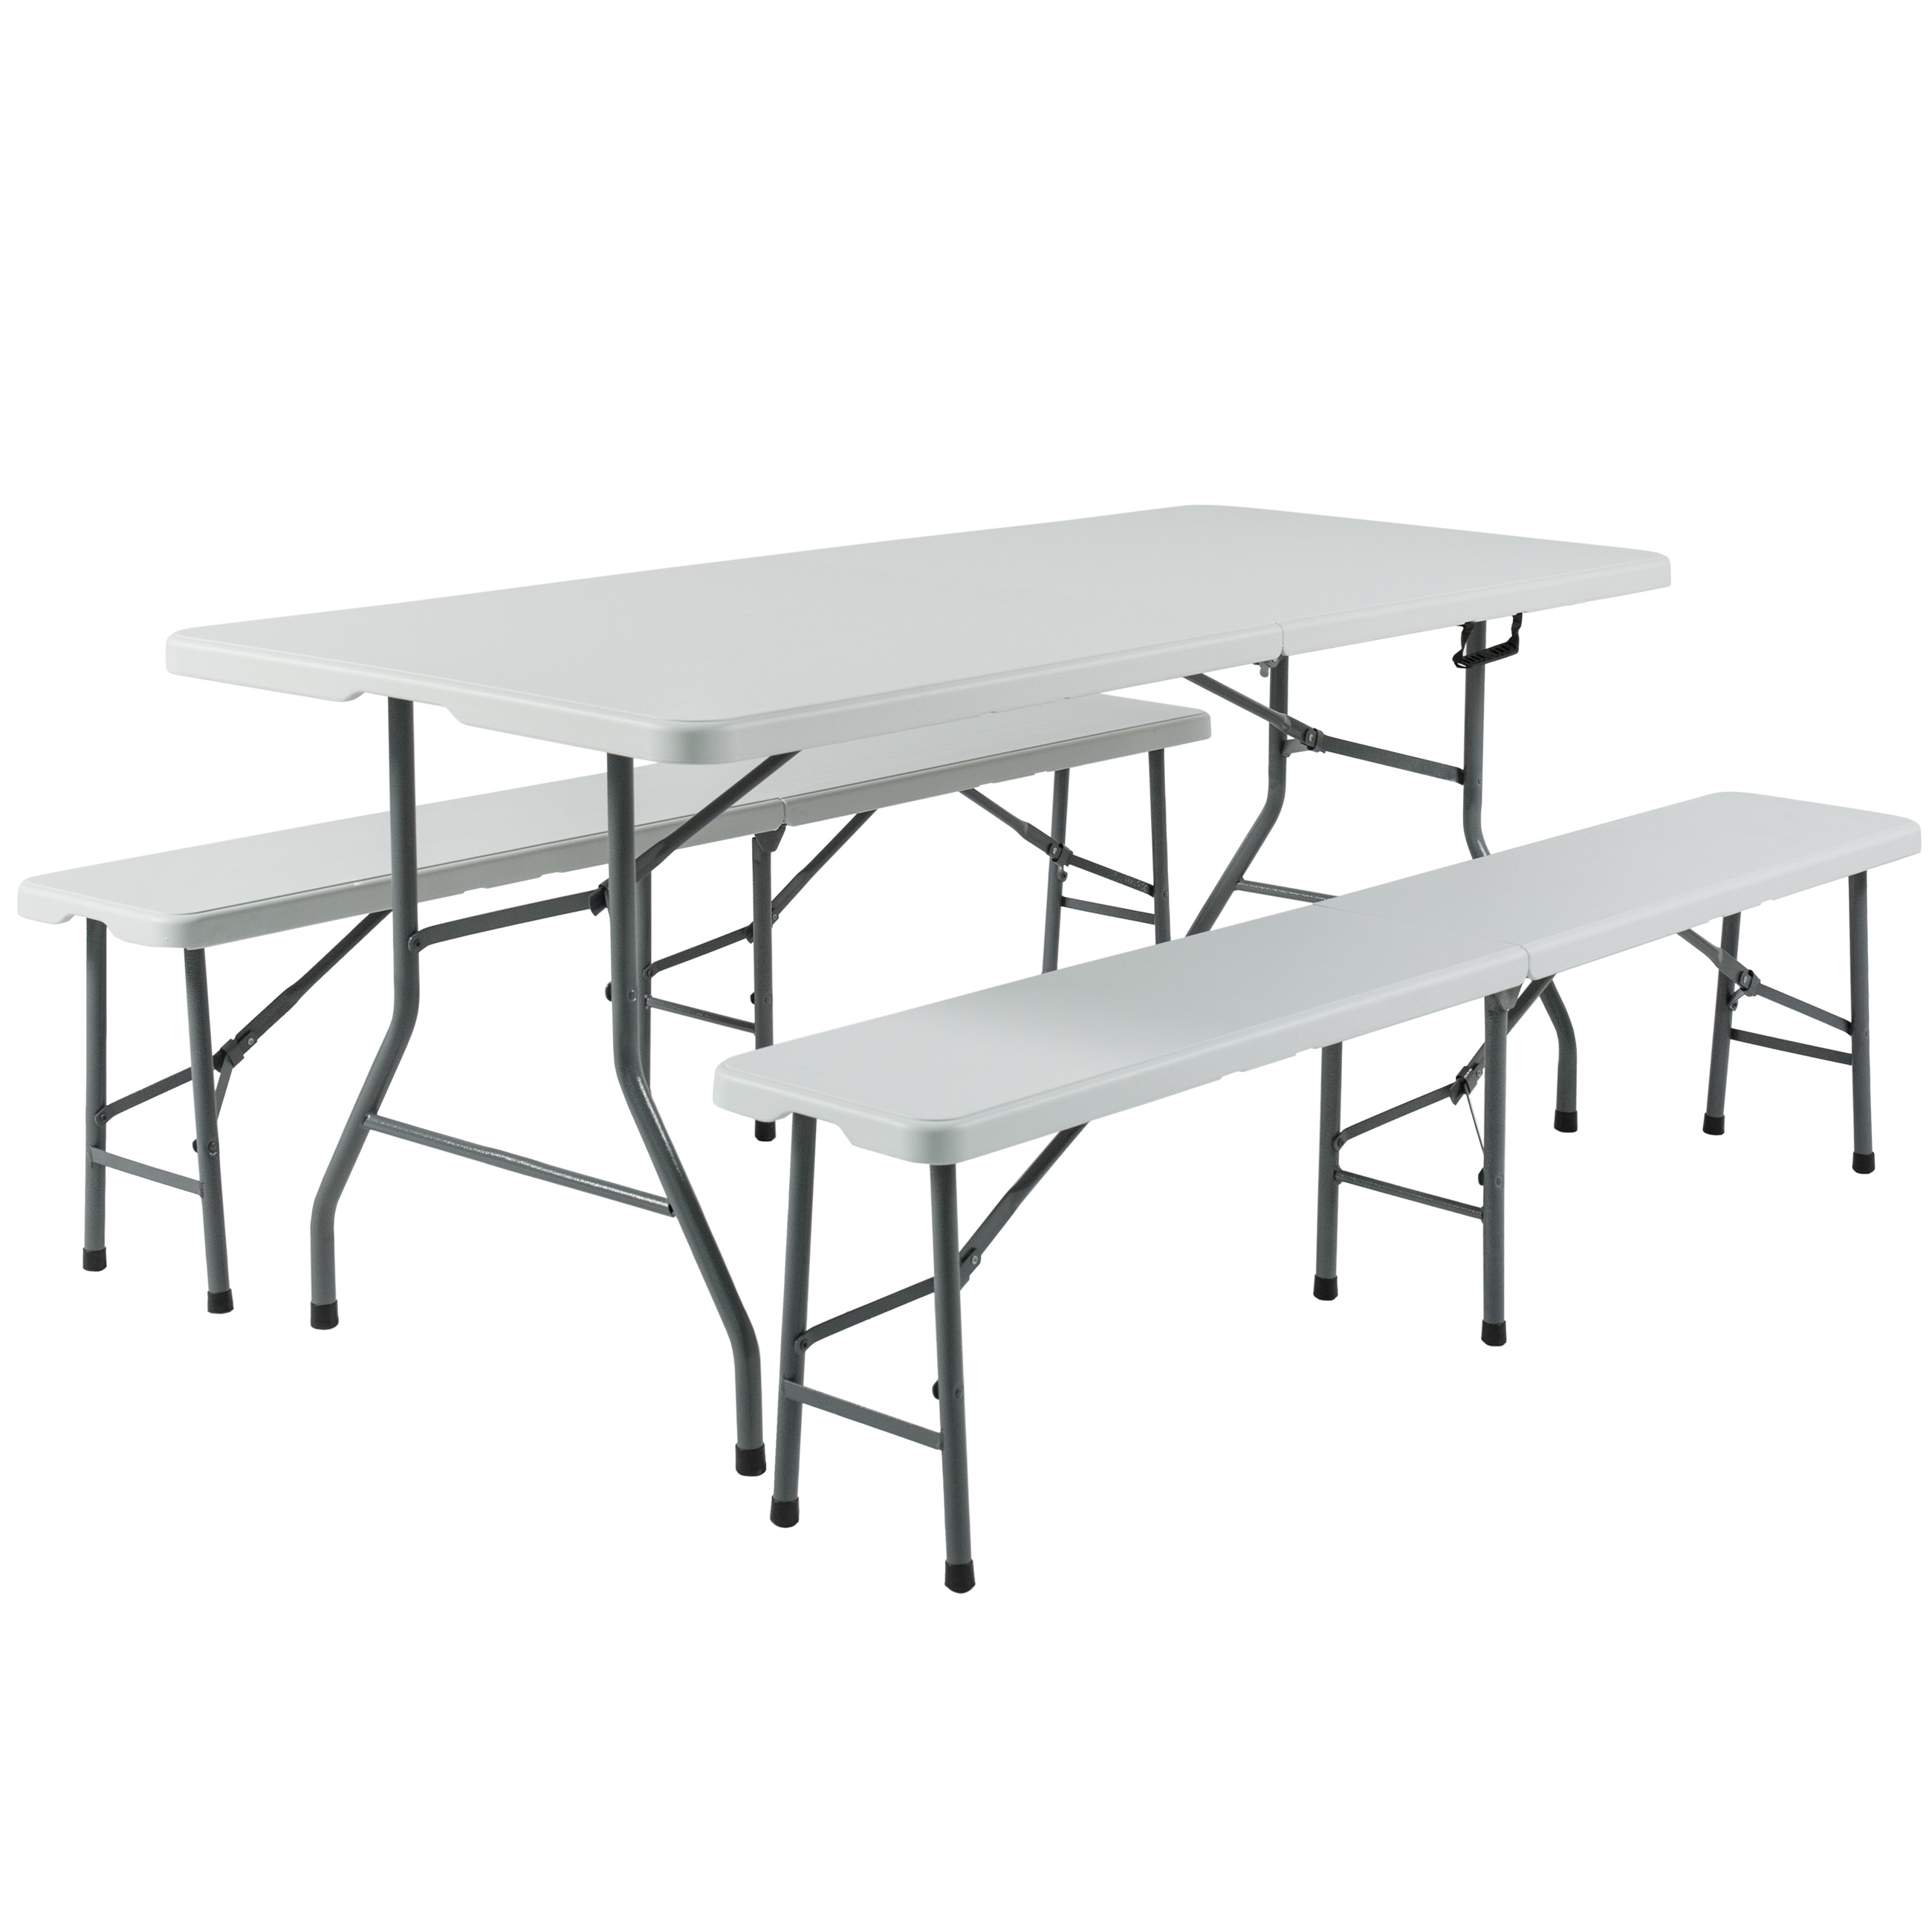 Best Choice Products 3pc Portable 6' Folding Table and Bench Set Combo Resin by